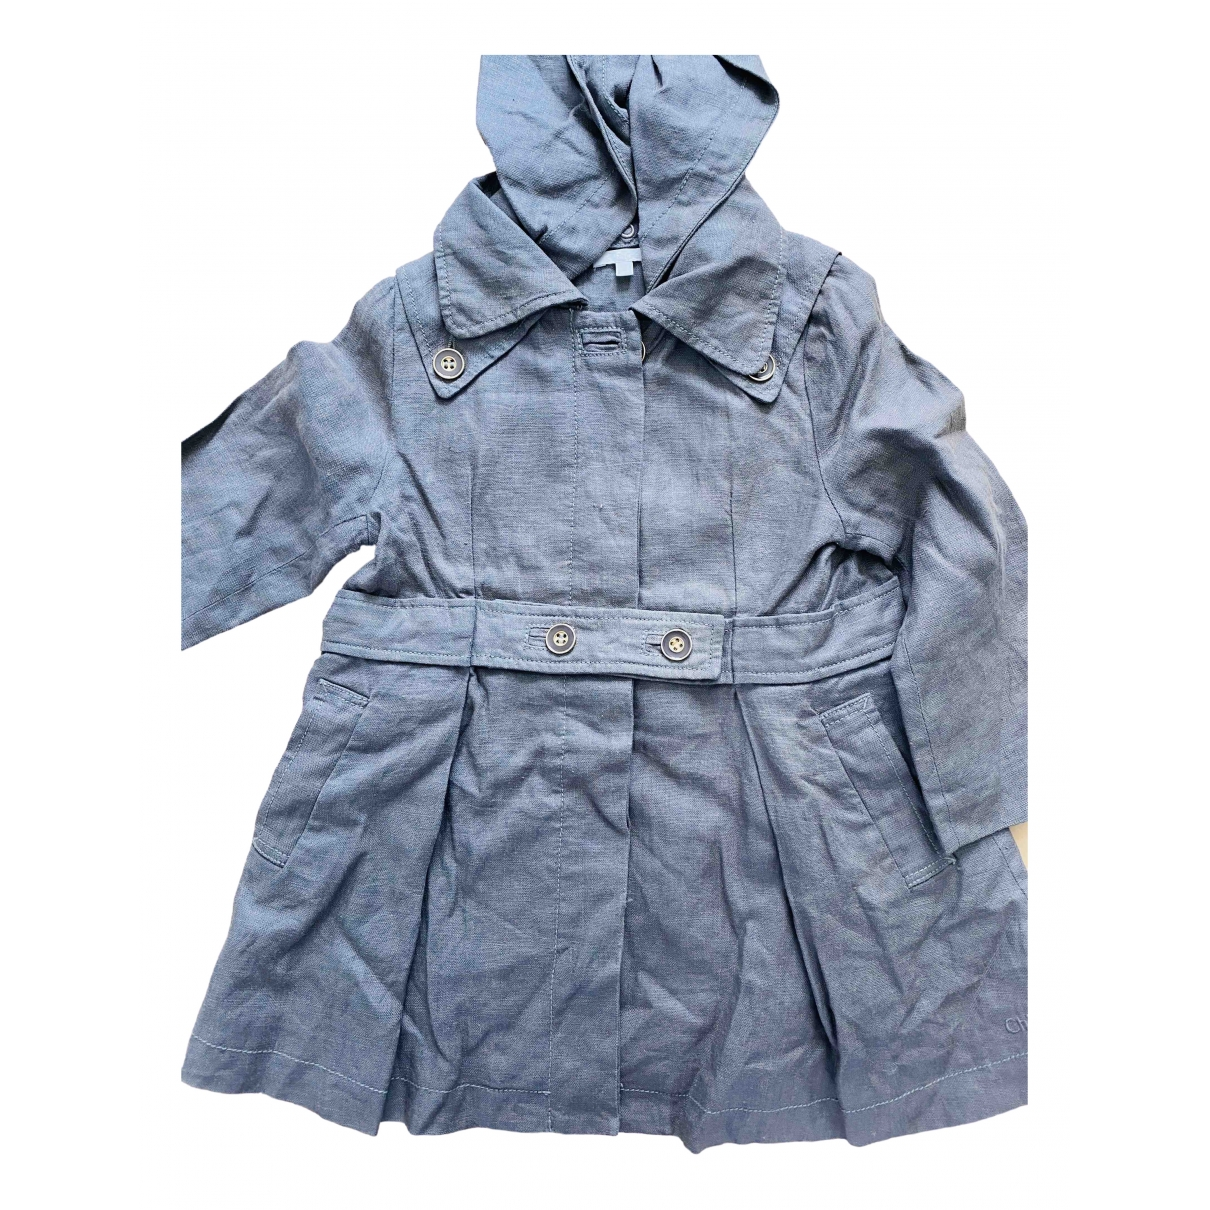 Chloé \N Anthracite Linen jacket & coat for Kids 3 years - up to 98cm FR